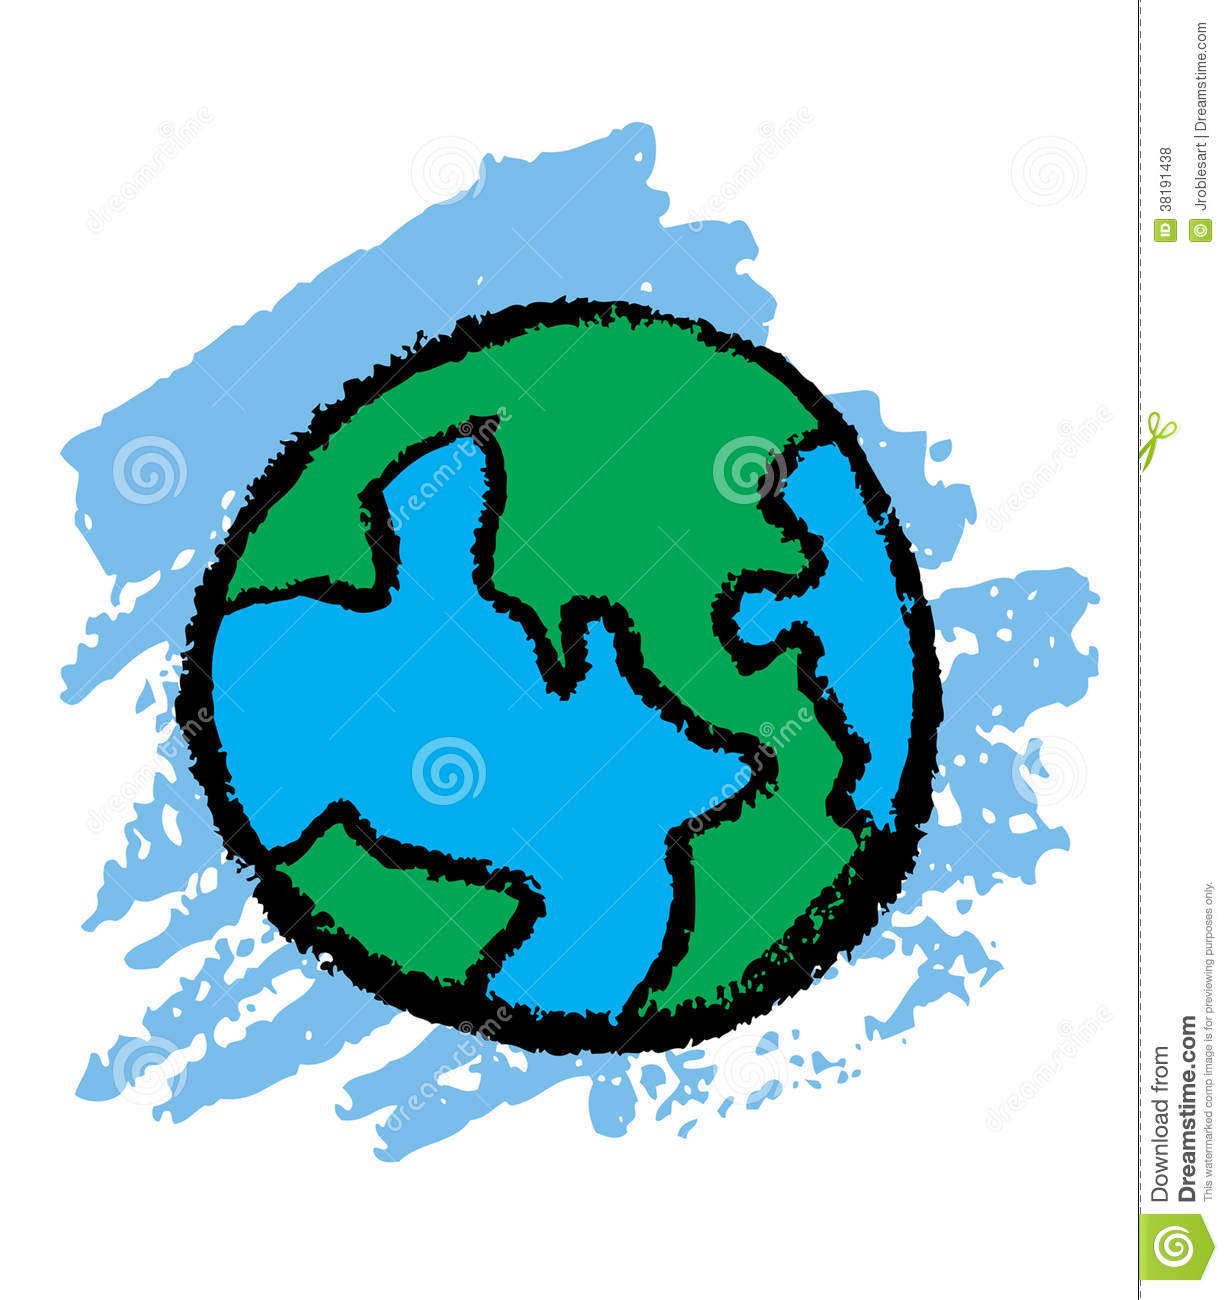 Earth Sketch Royalty Free Stock Photos Image 38191438